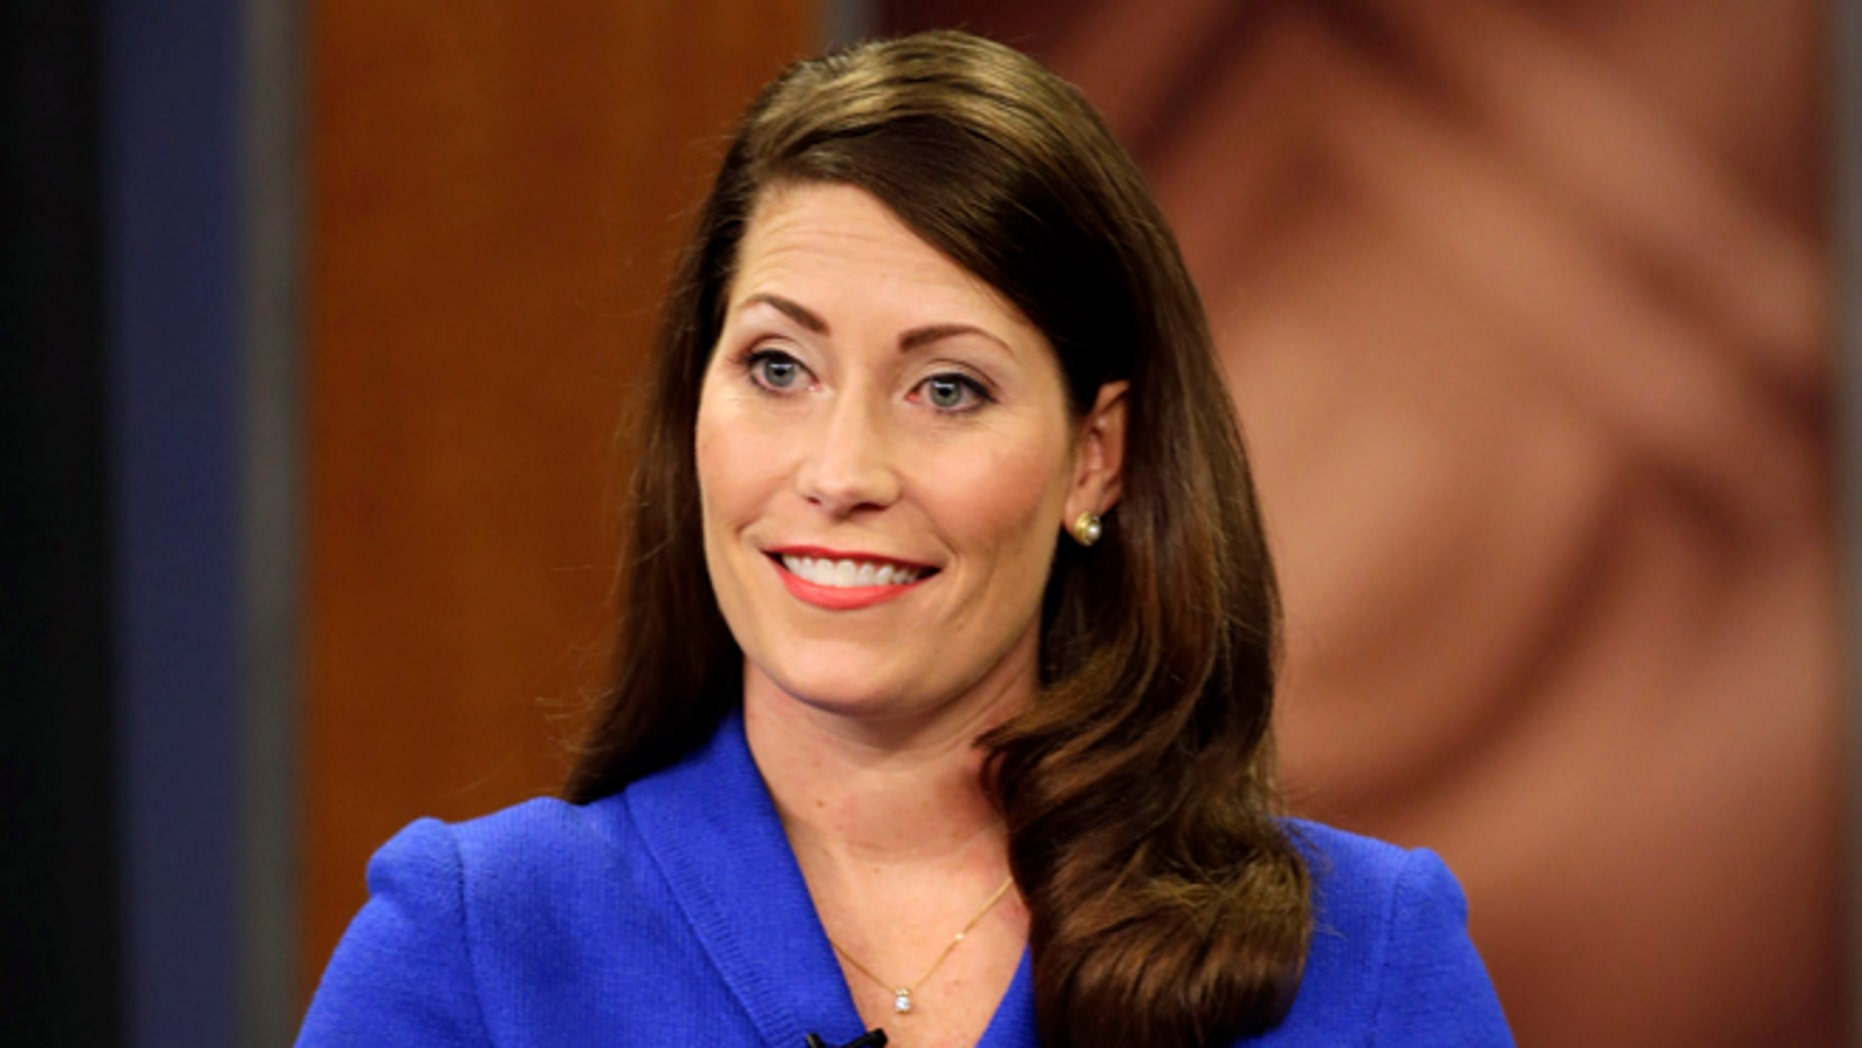 """In this Monday, Oct. 13, 2014 photo, Kentucky Secretary of State Alison Lundergan Grimes appears on """"Kentucky Tonight"""" television broadcast live from KET studios in Lexington, Ky."""